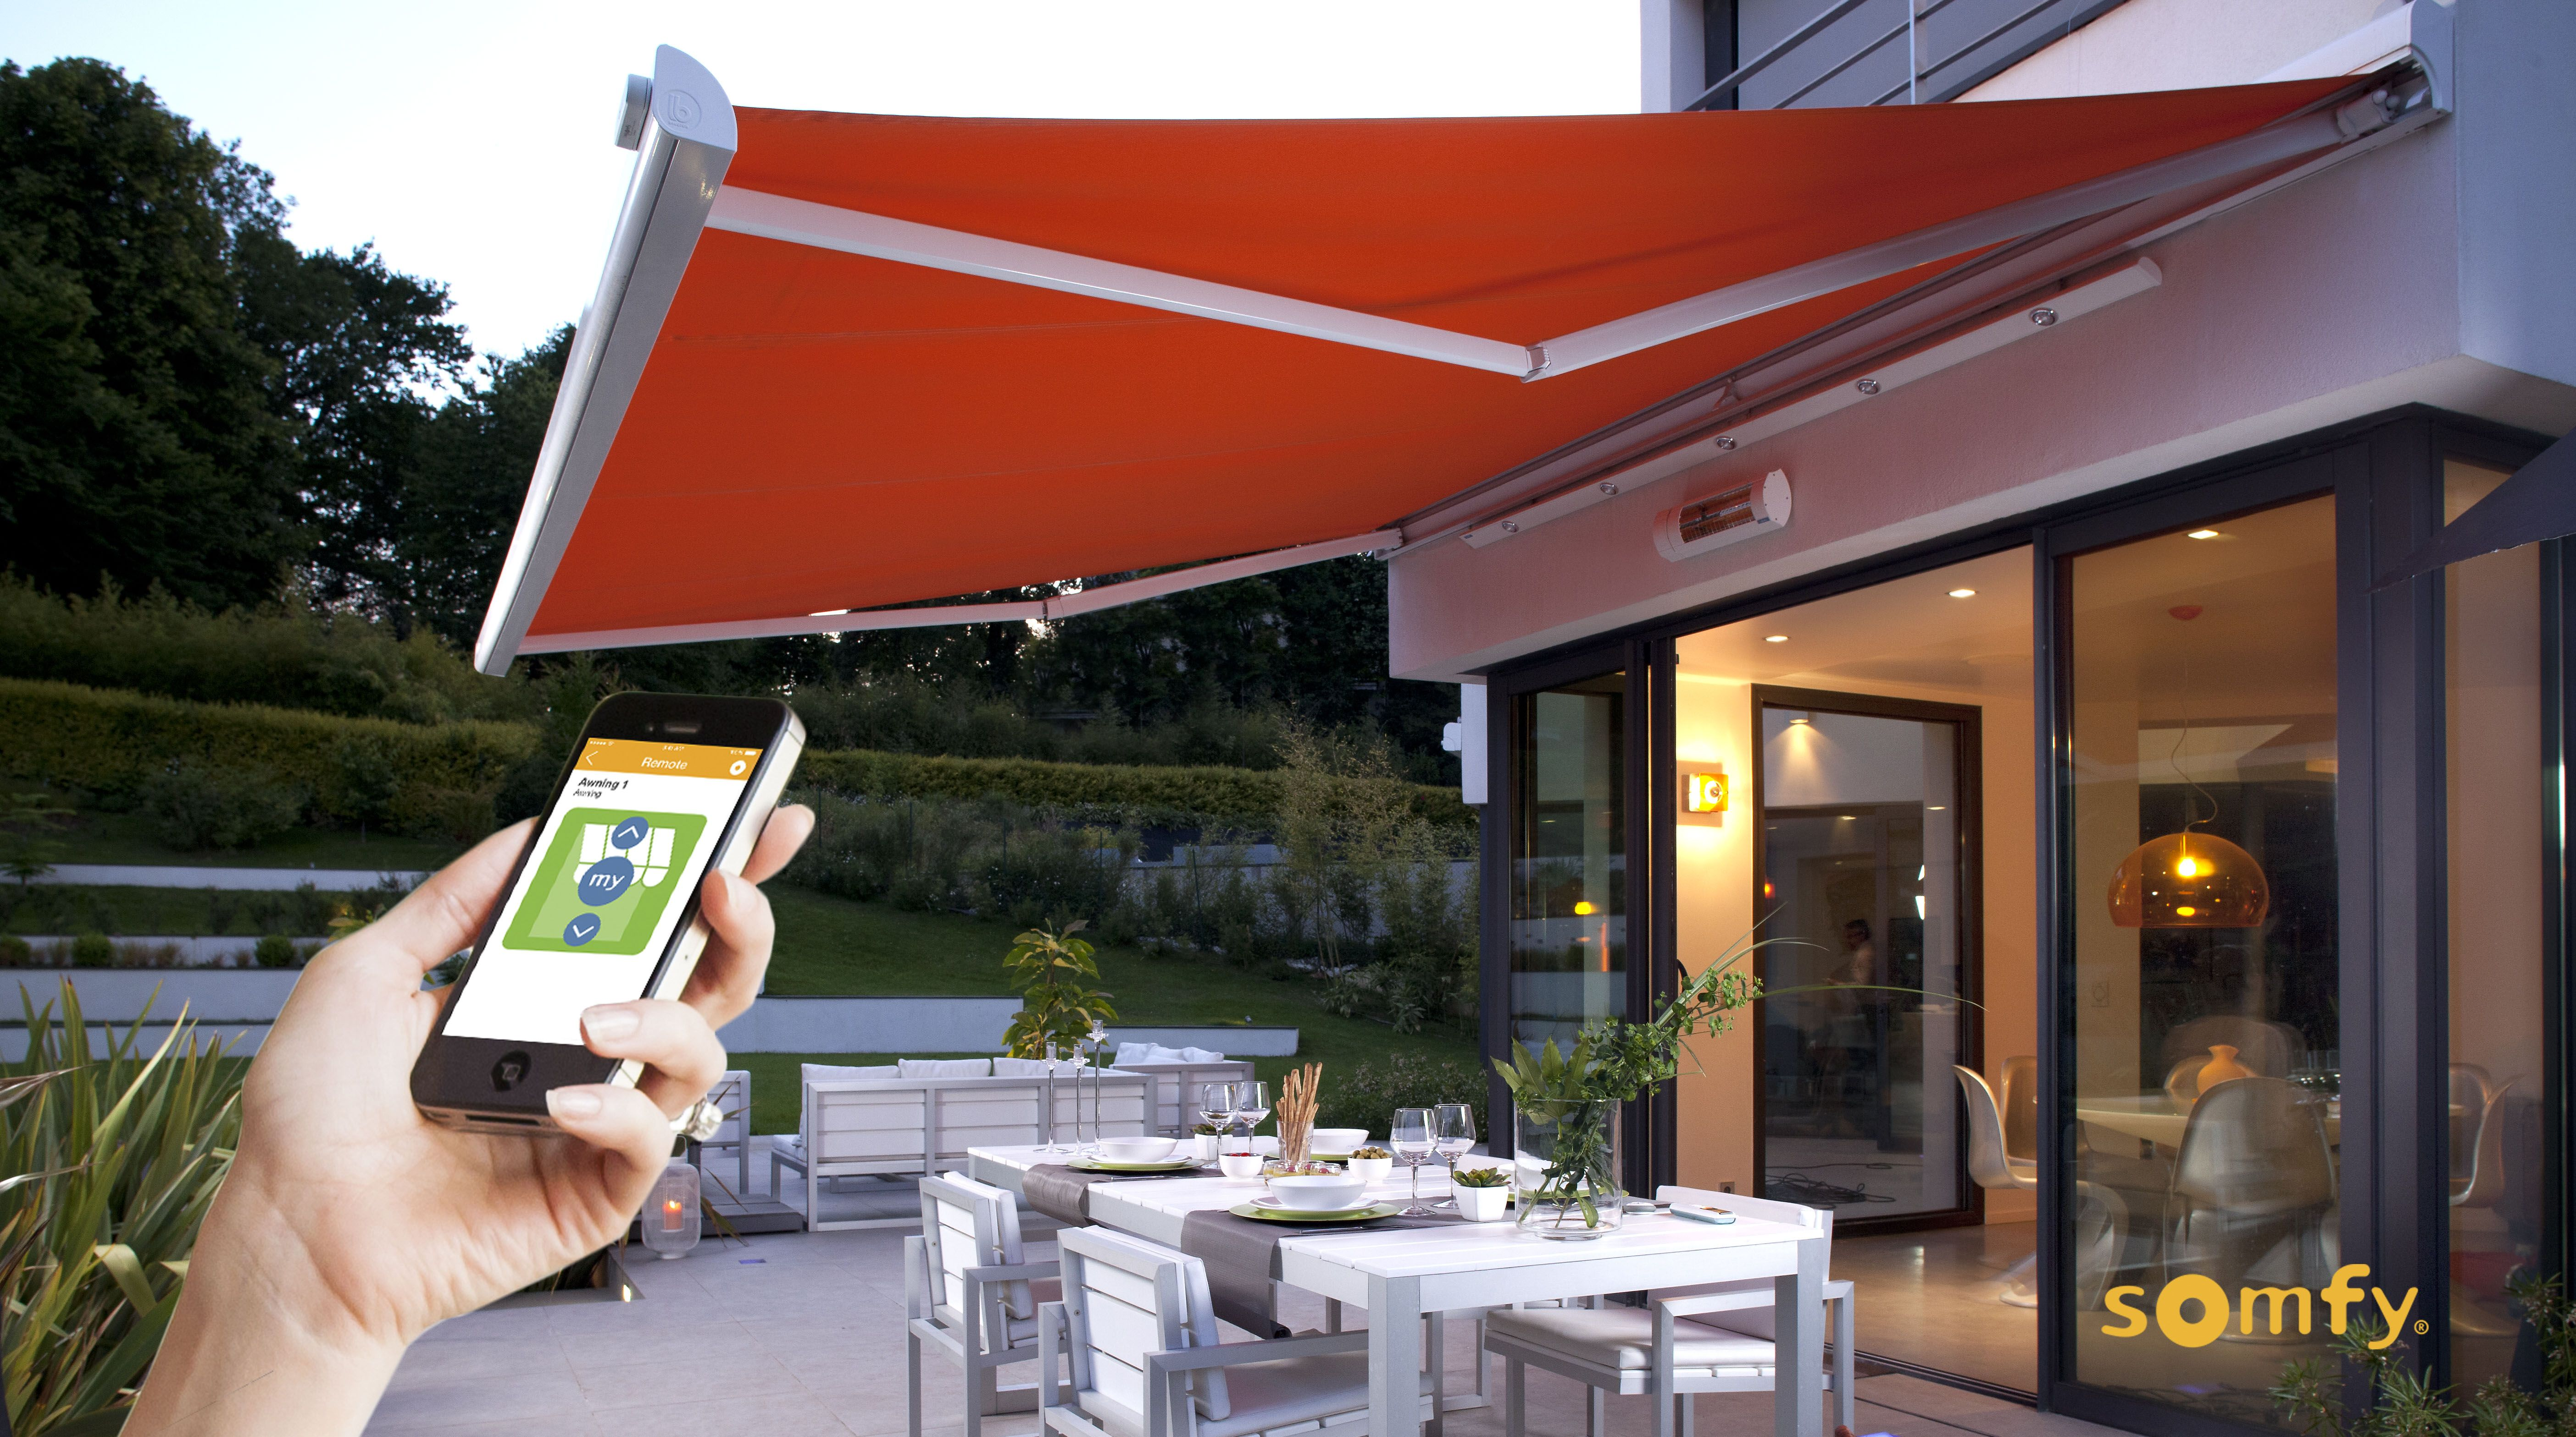 calgary grande edmonton awnings org retractable prairie giglio awning e shade sunsetters solutions